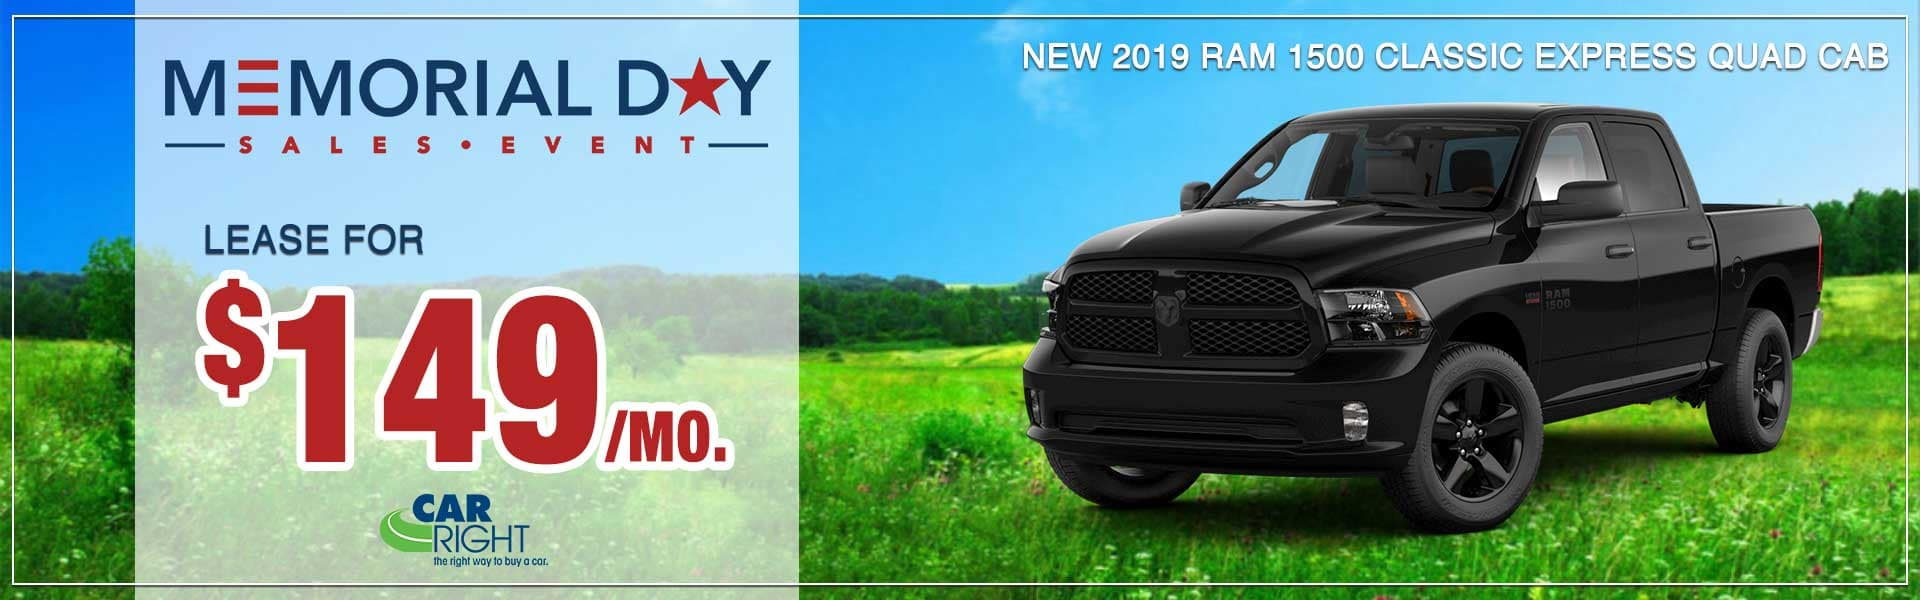 B3108-2019-ram-1500-classic-express-600x400 Jeep celebration event Chrysler Pacifica blockbuster sales event dodge performance days bigger things sales event Memorial Day sales event carright moon township Pittsburgh new vehicle specials lease specials